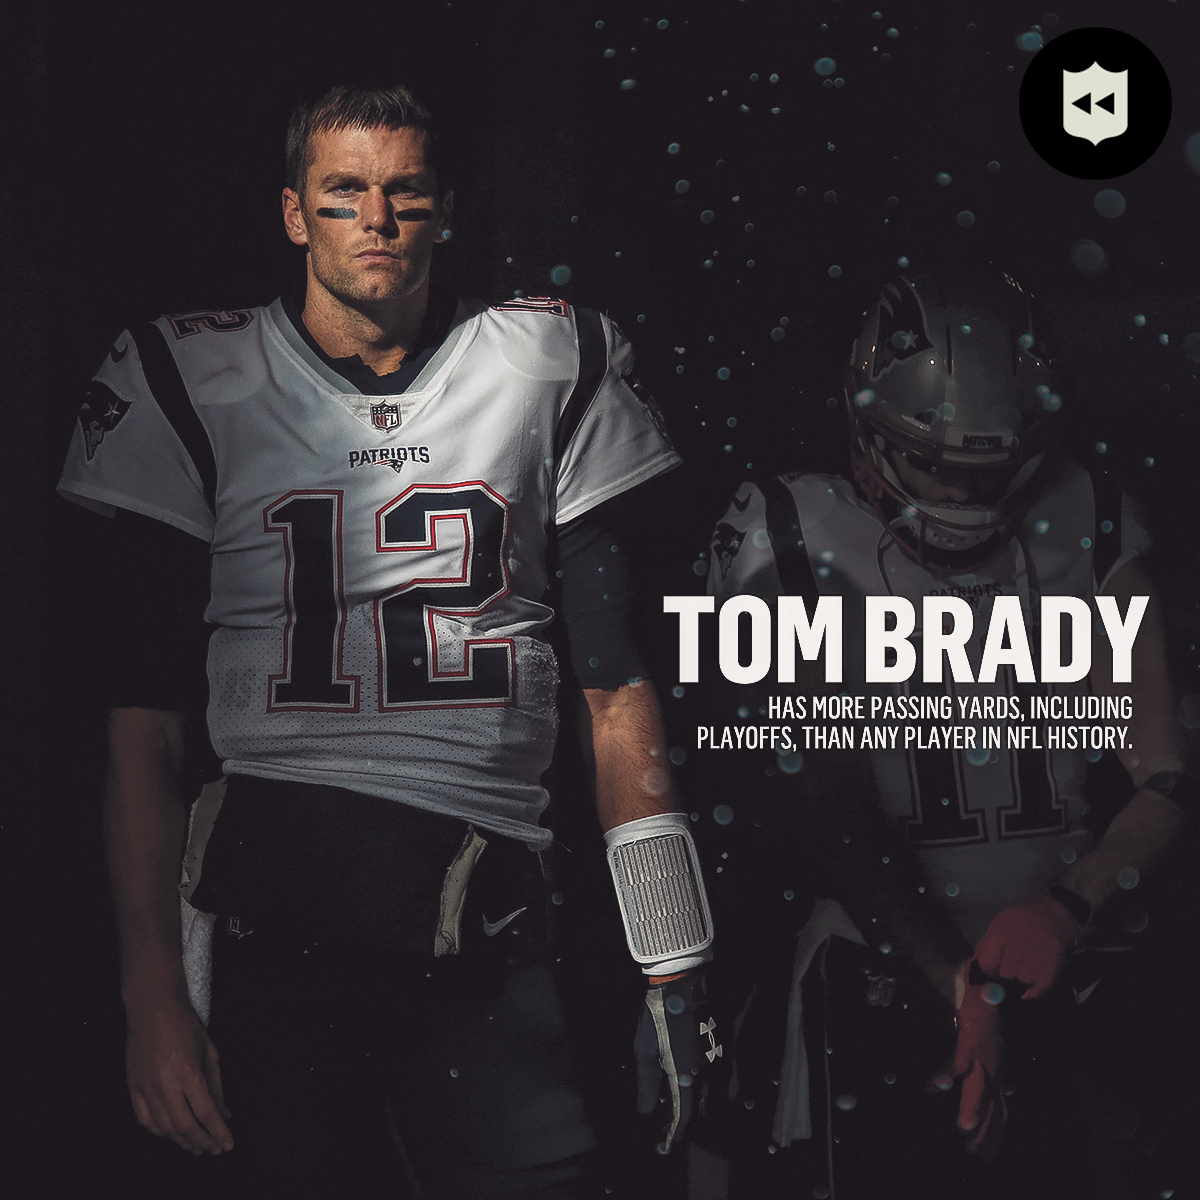 Brady_most_yards_001.jpg